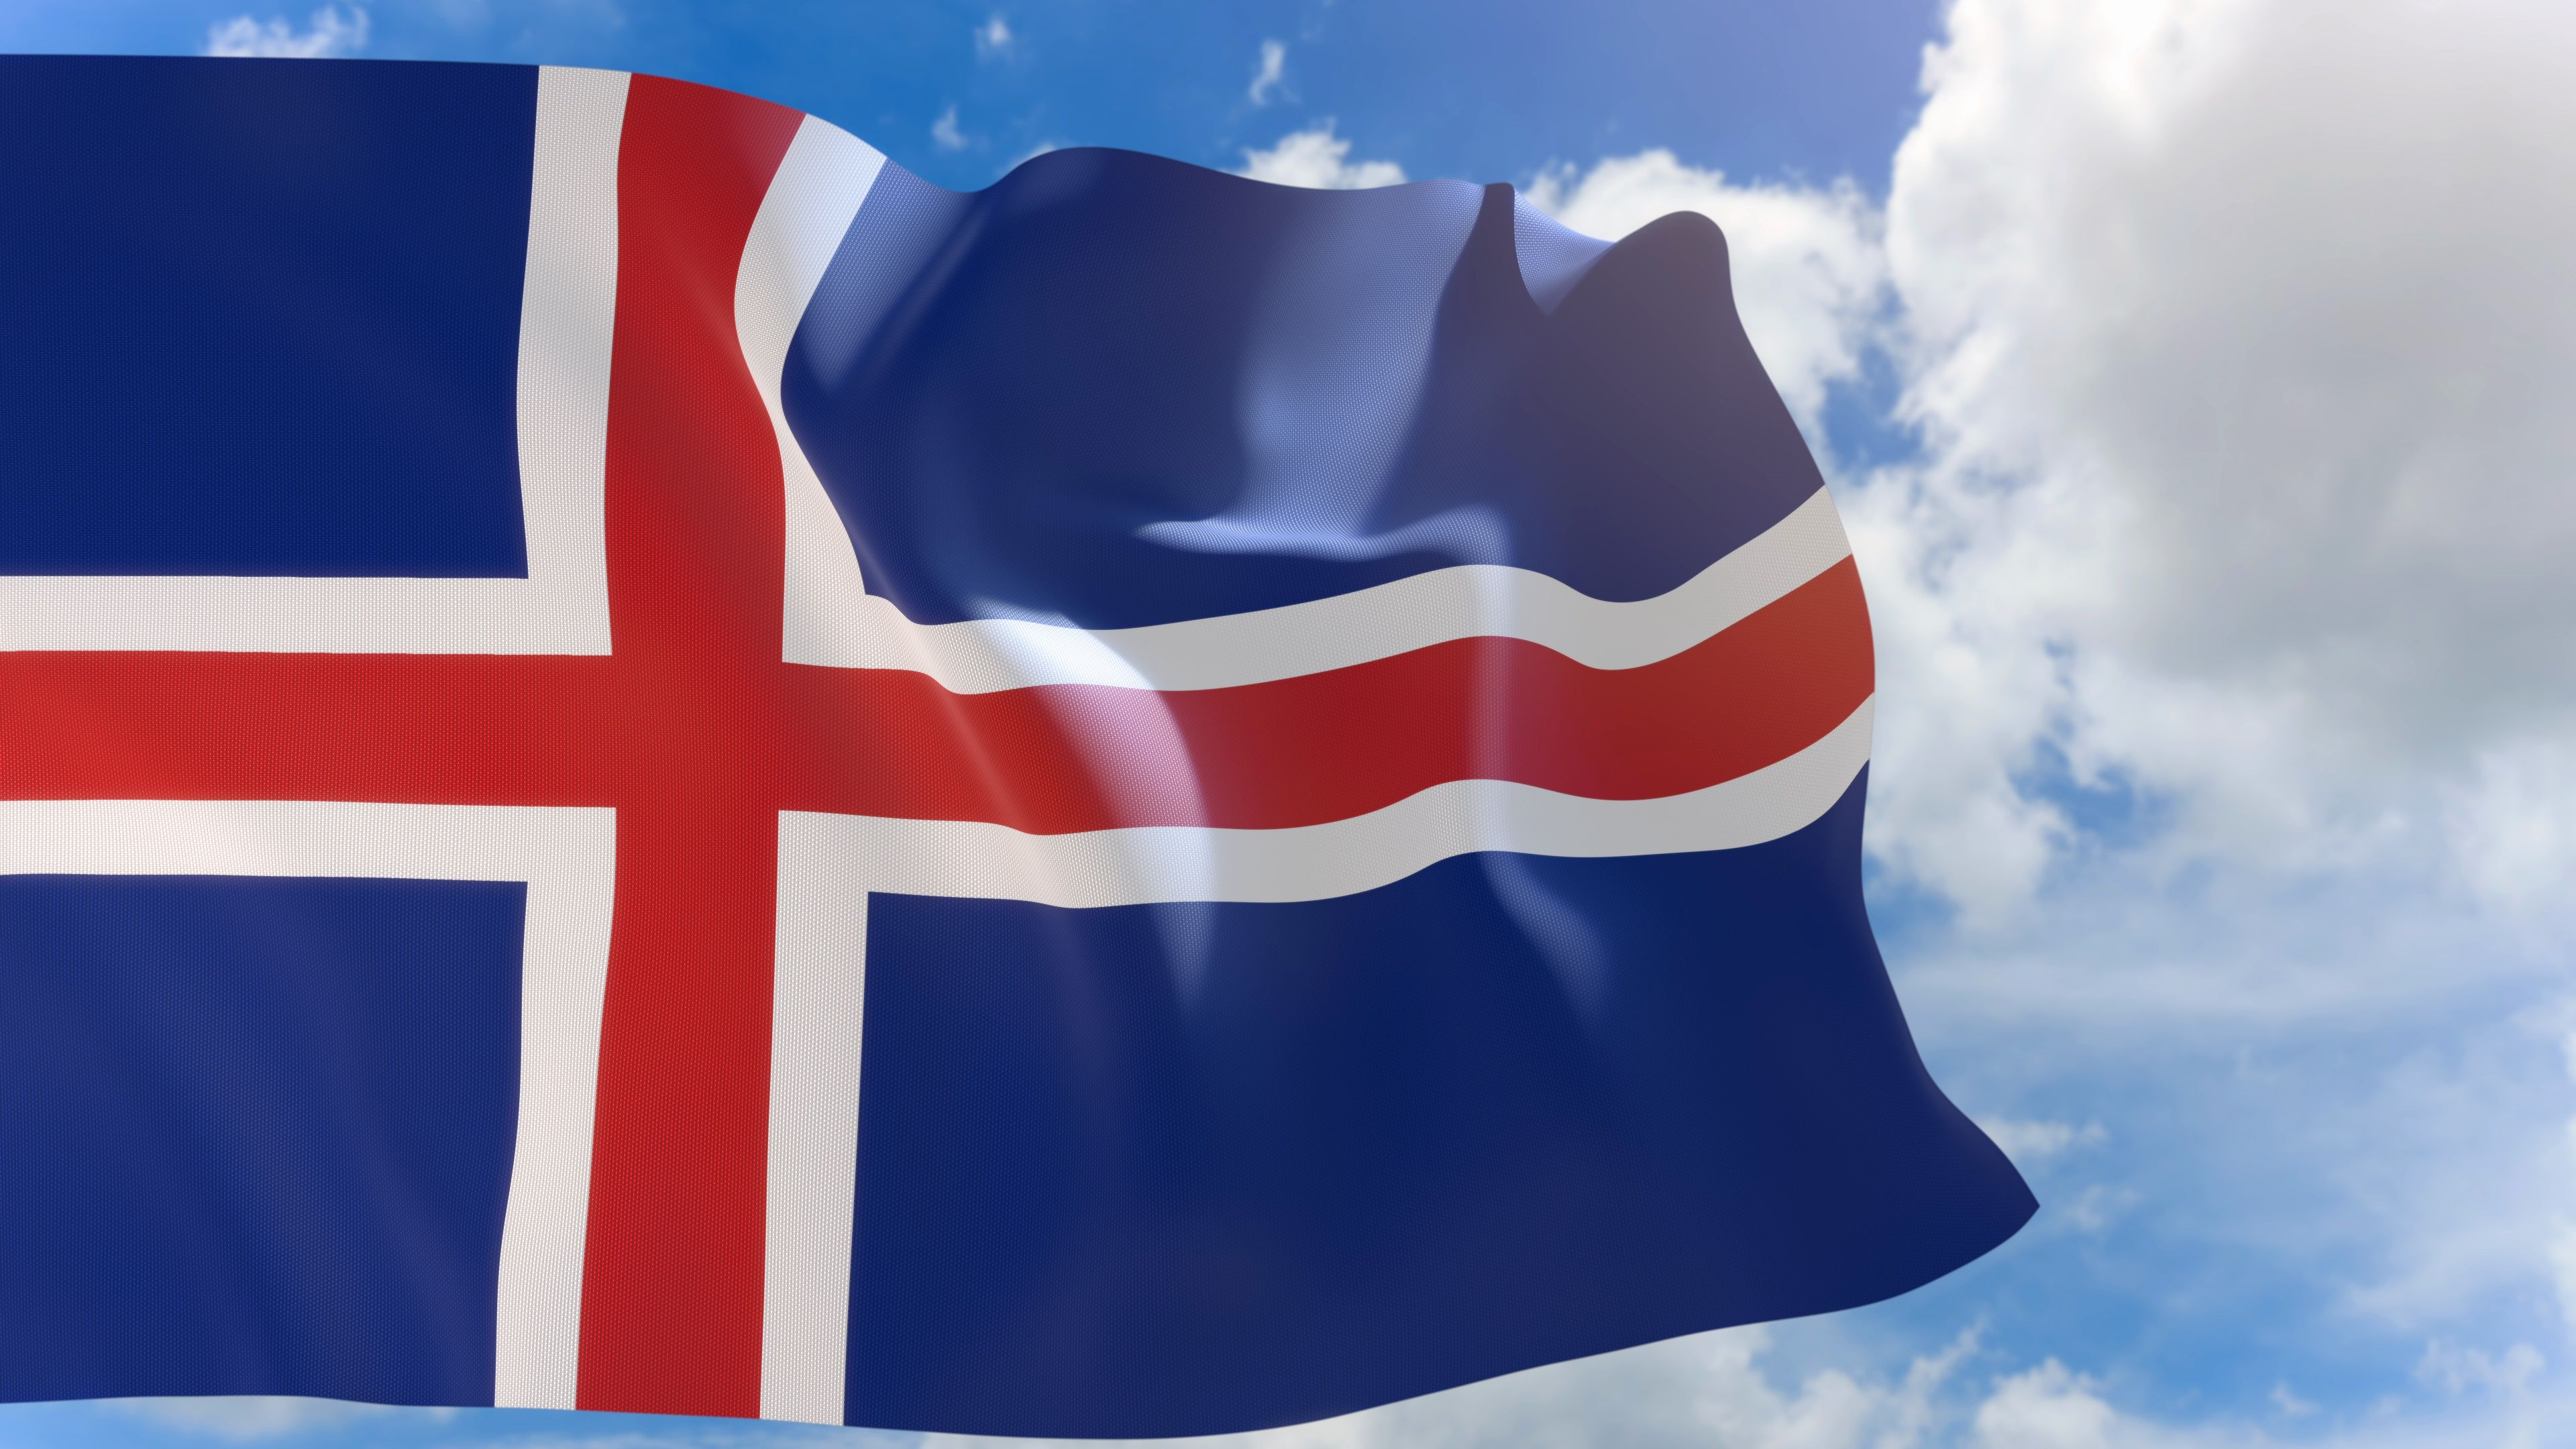 3d Rendering Of Iceland Flag Waving On Blue Sky Background With Alpha Channel Stock Footage Waving Blue Flag Rendering Iceland Flag Blue Sky Background Flag